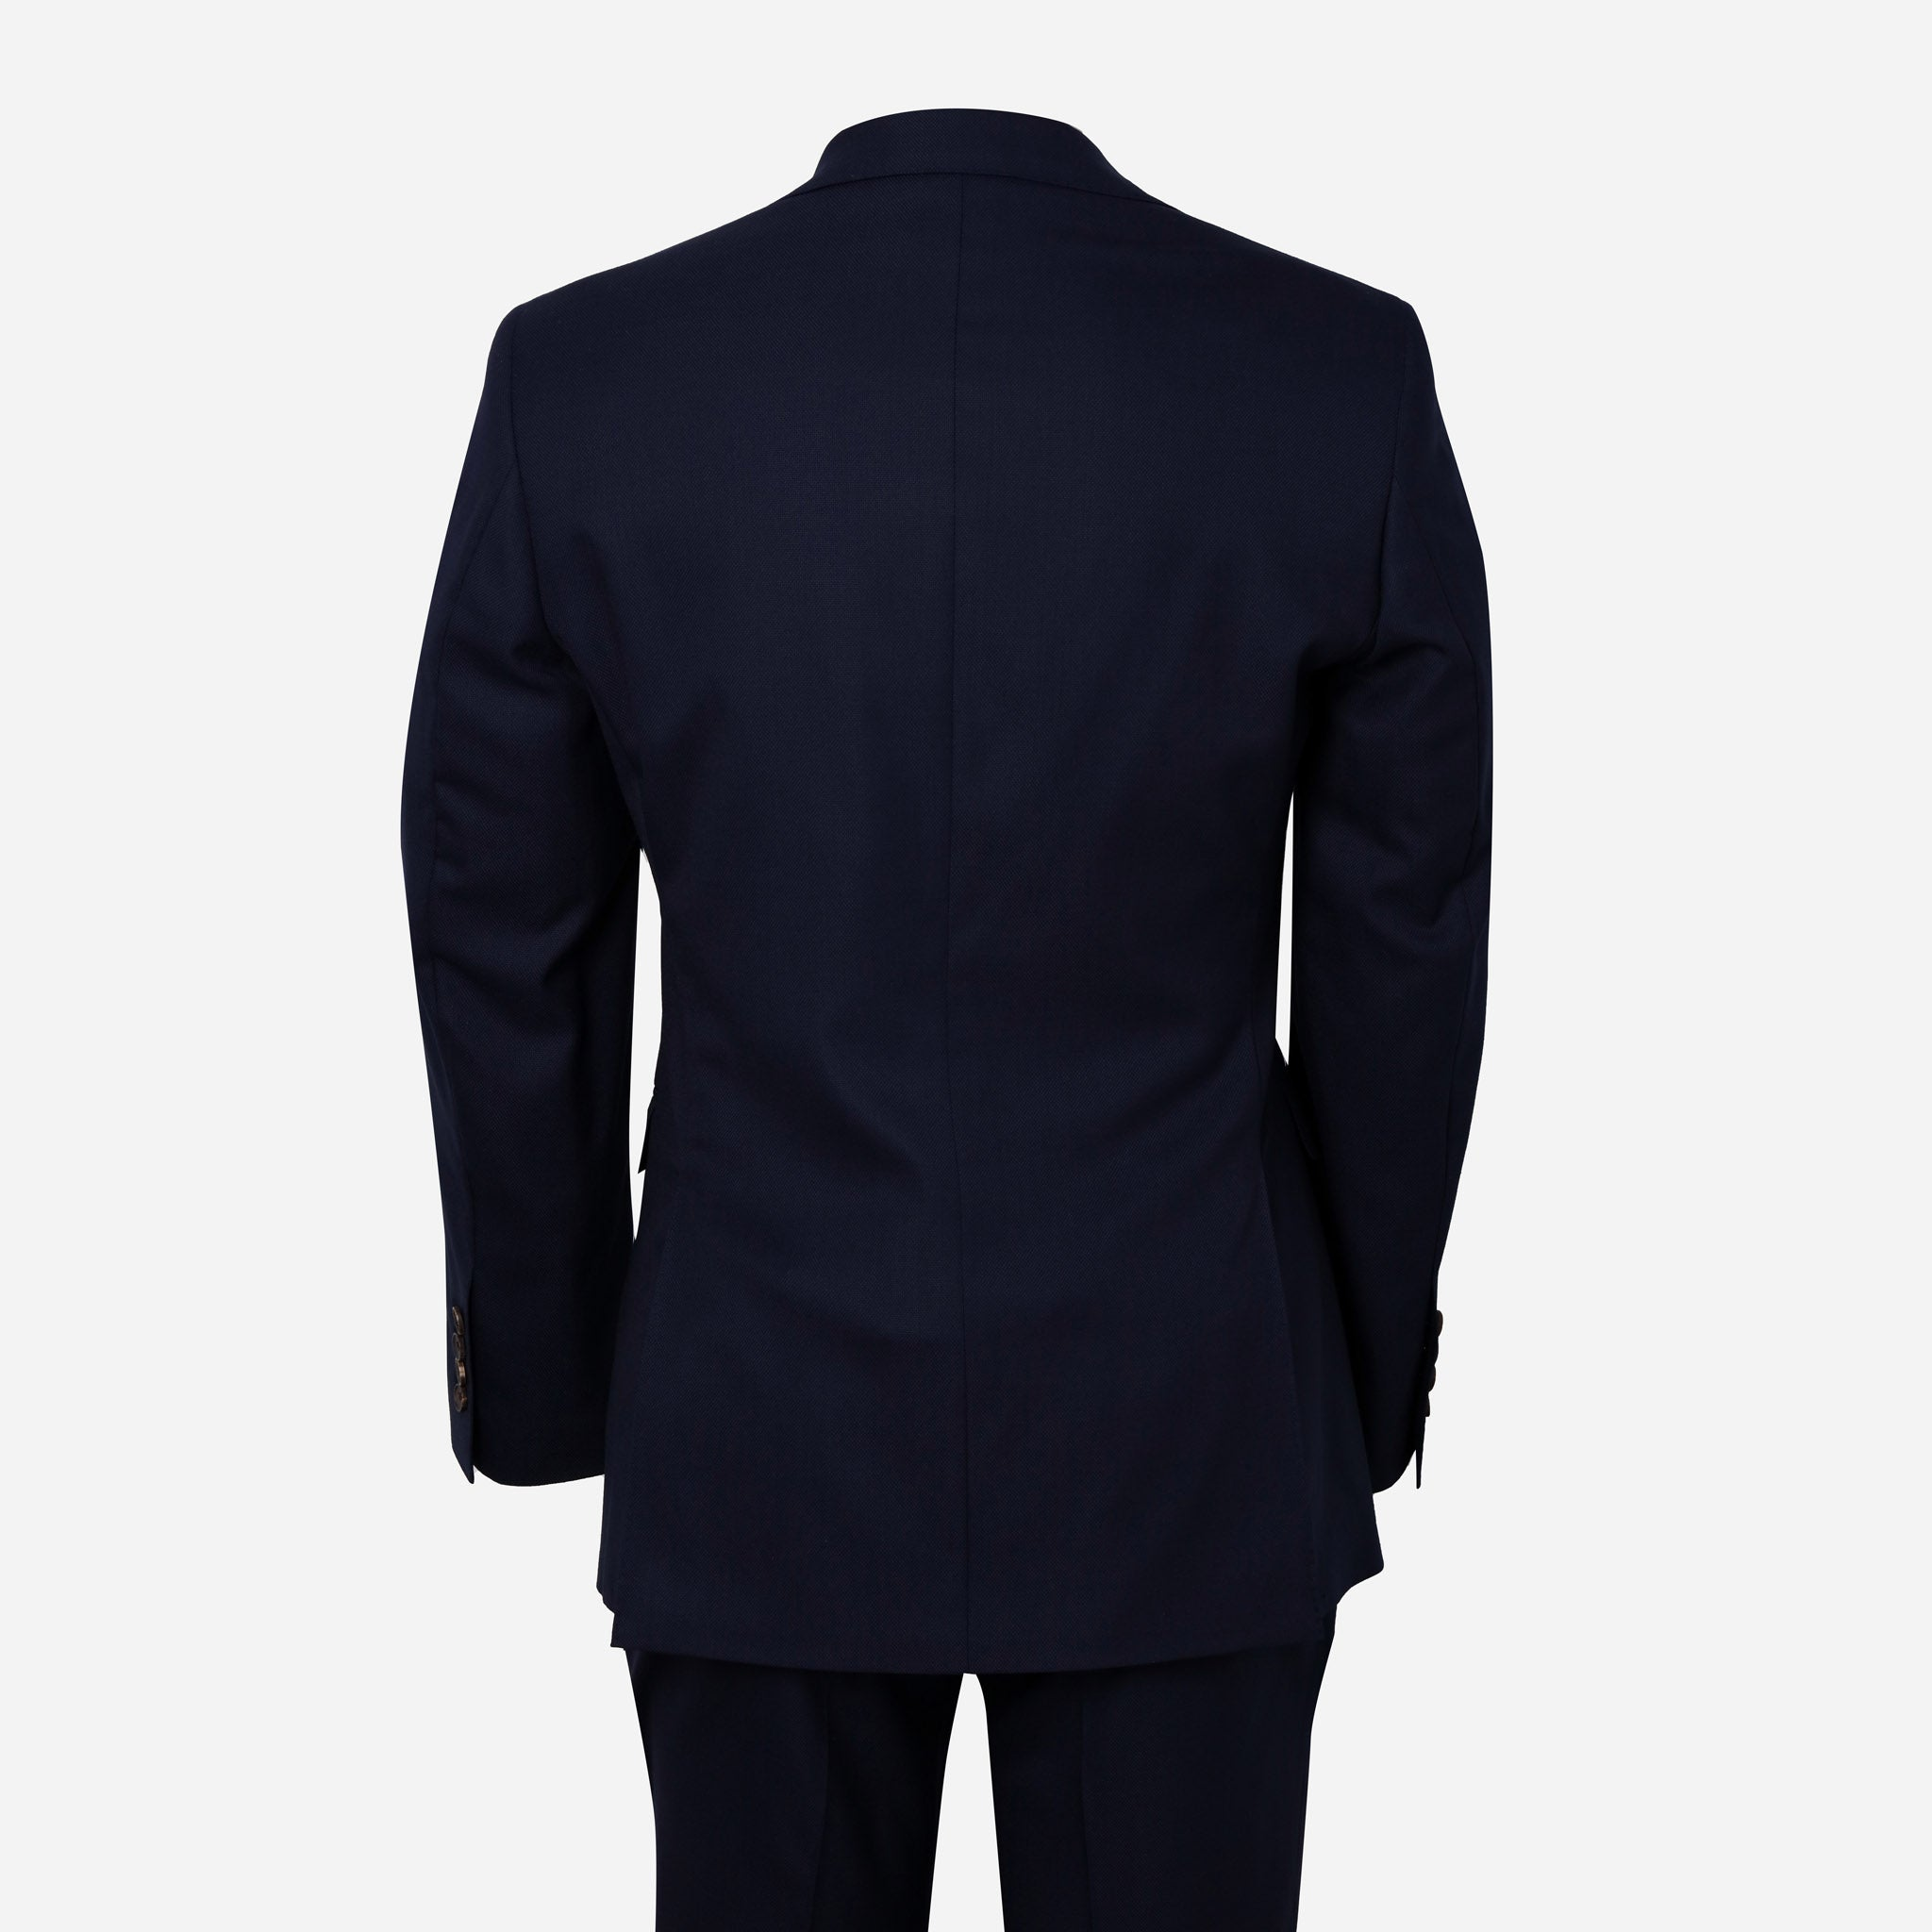 Essentials Luxe Suiting in Navy